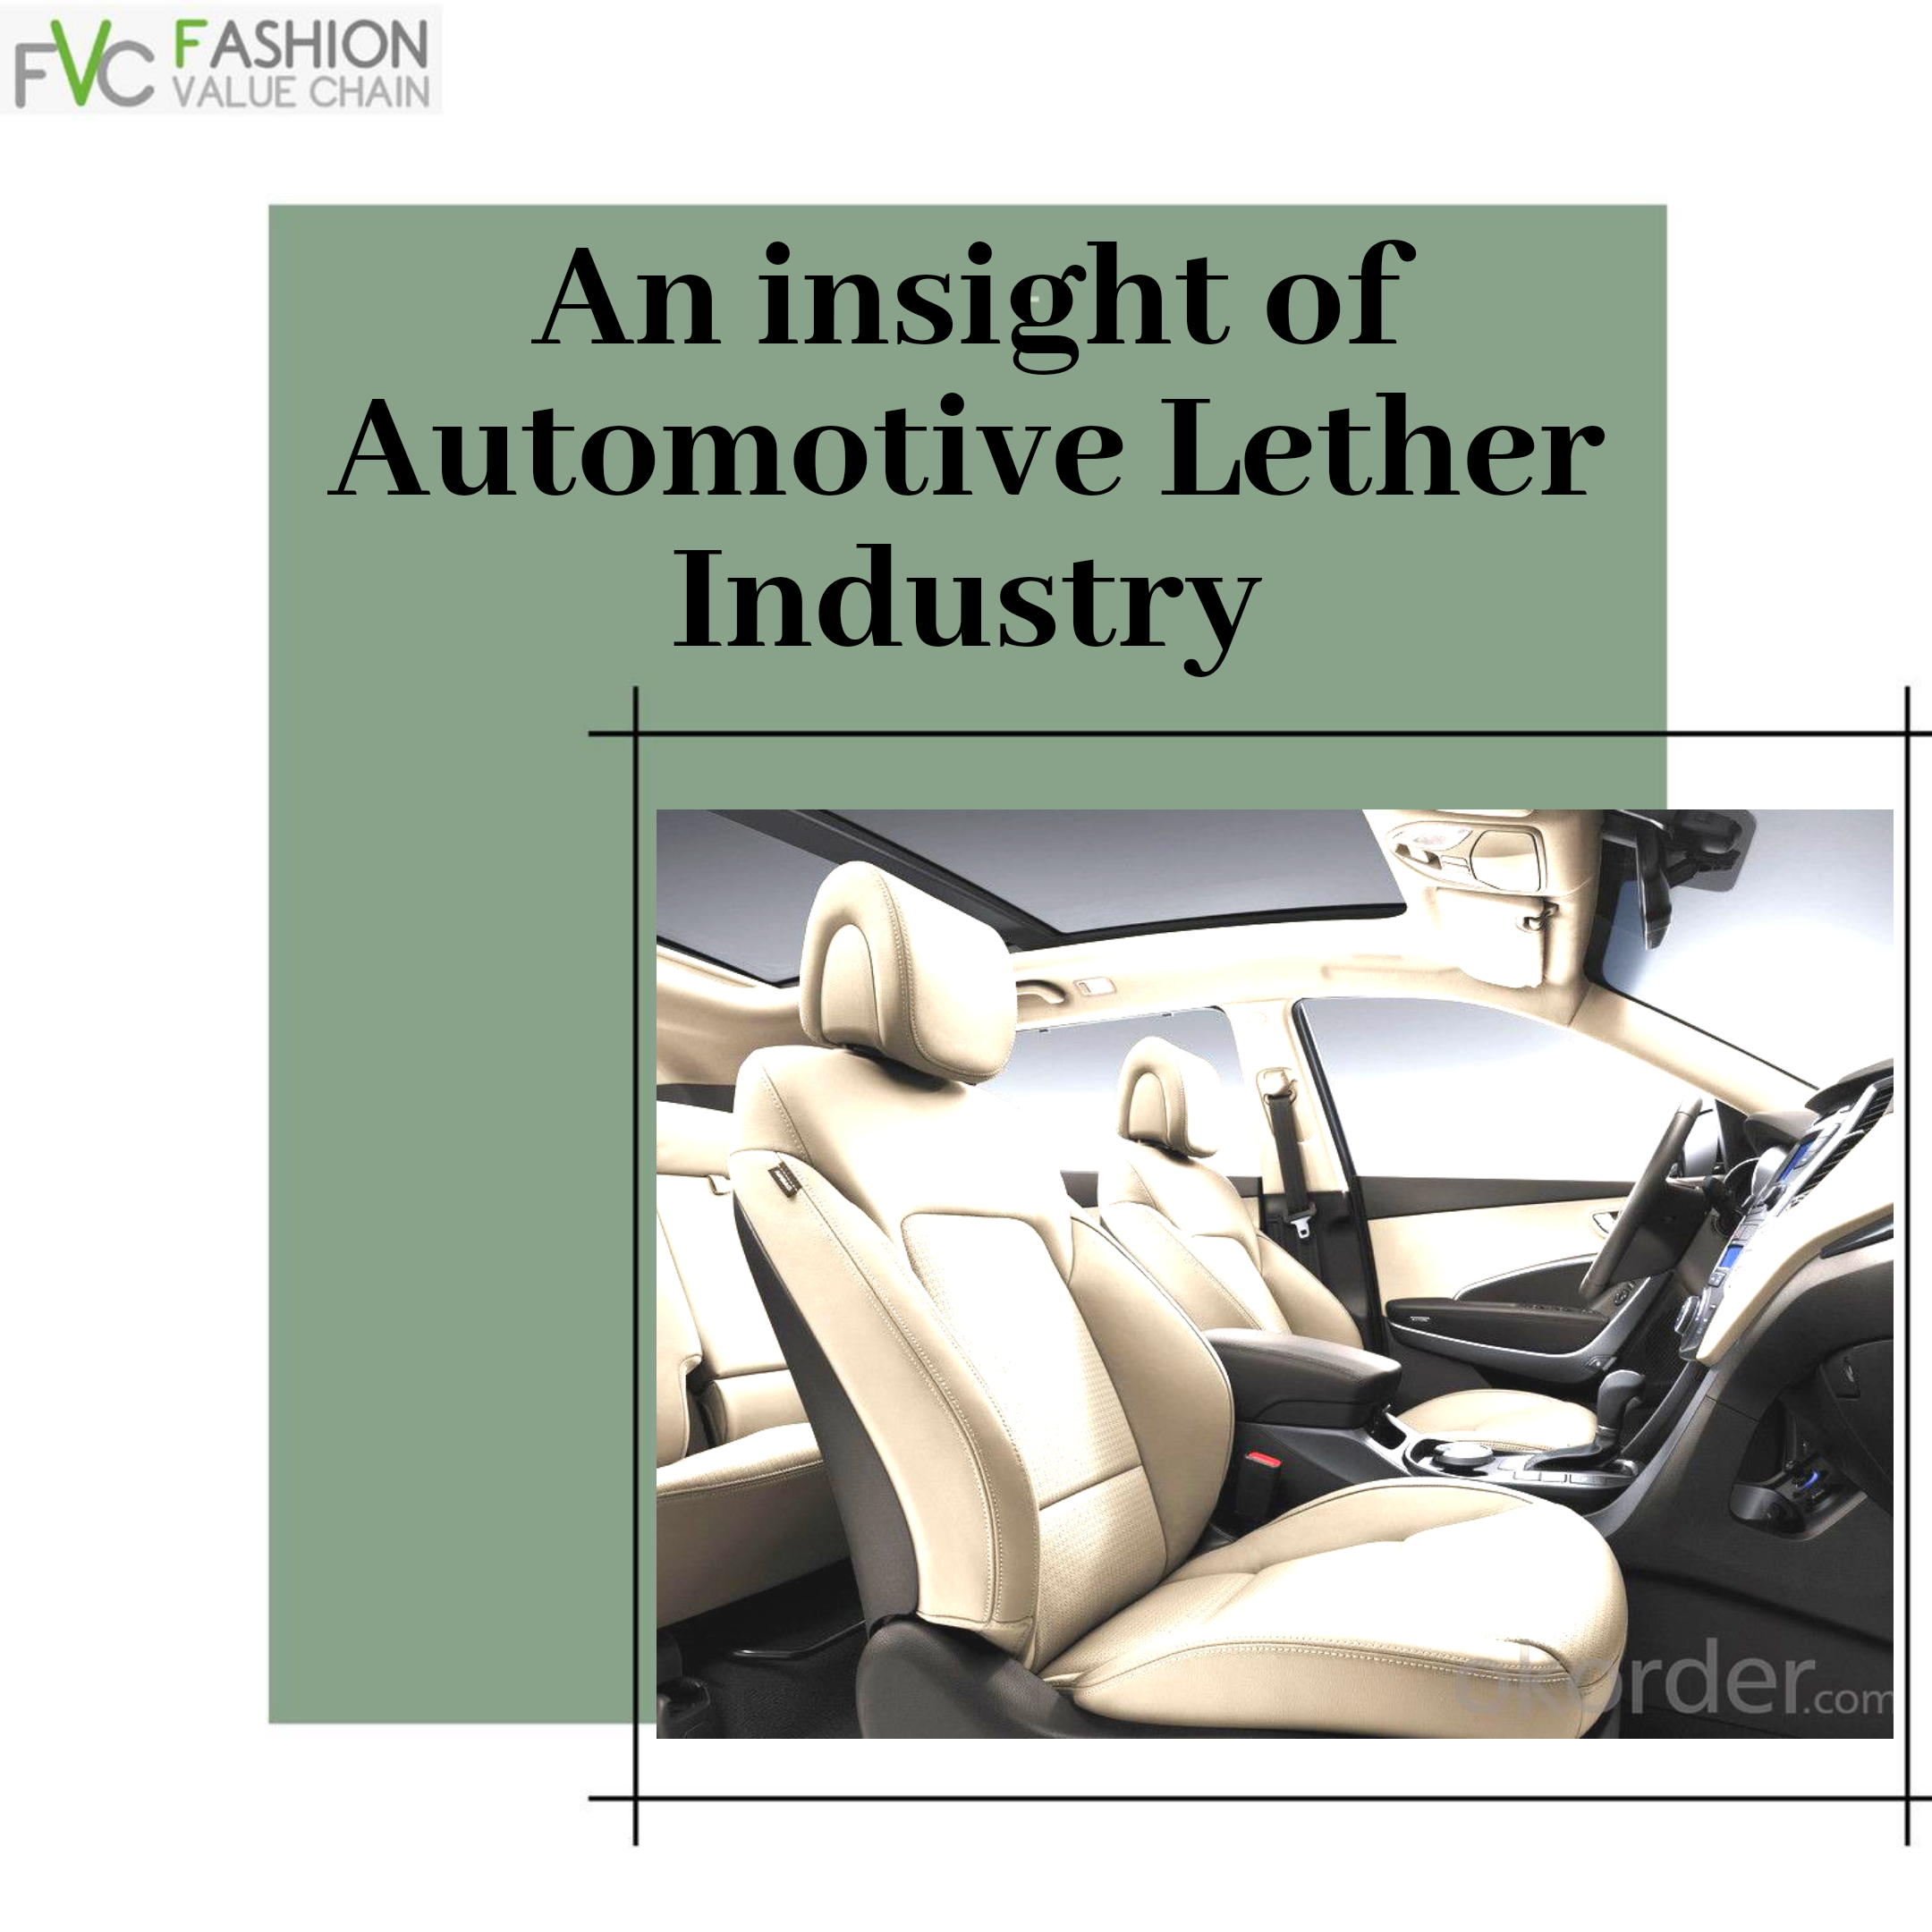 An Insight of Automotive Leather Industry